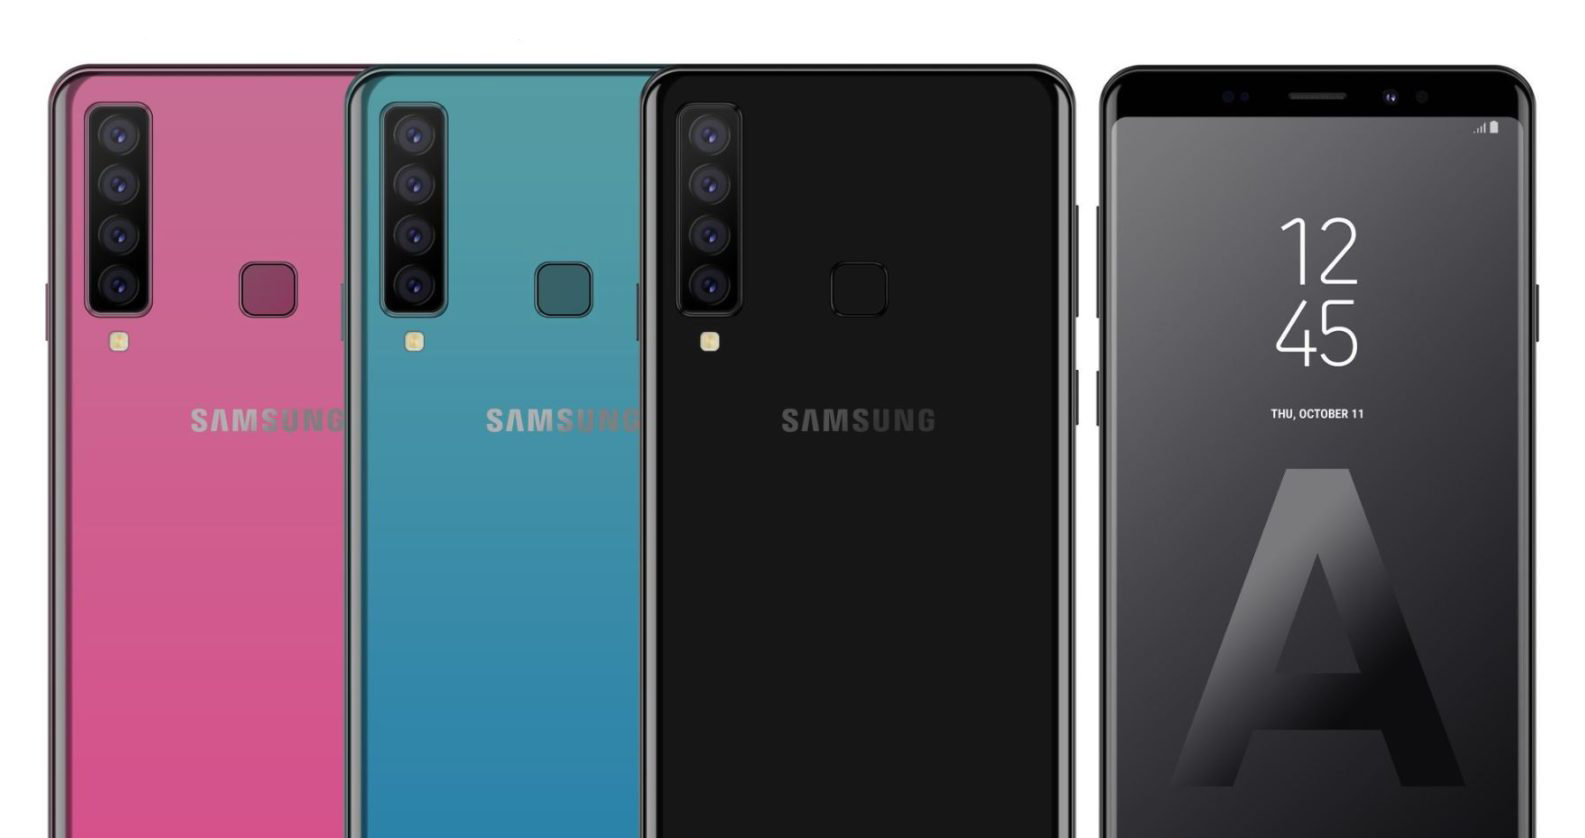 3844bb8ff5c6c Samsung Galaxy A9 Star Pro Envisioned as Company's First-Ever Smartphone to  Feature Rear Quadruple Camera